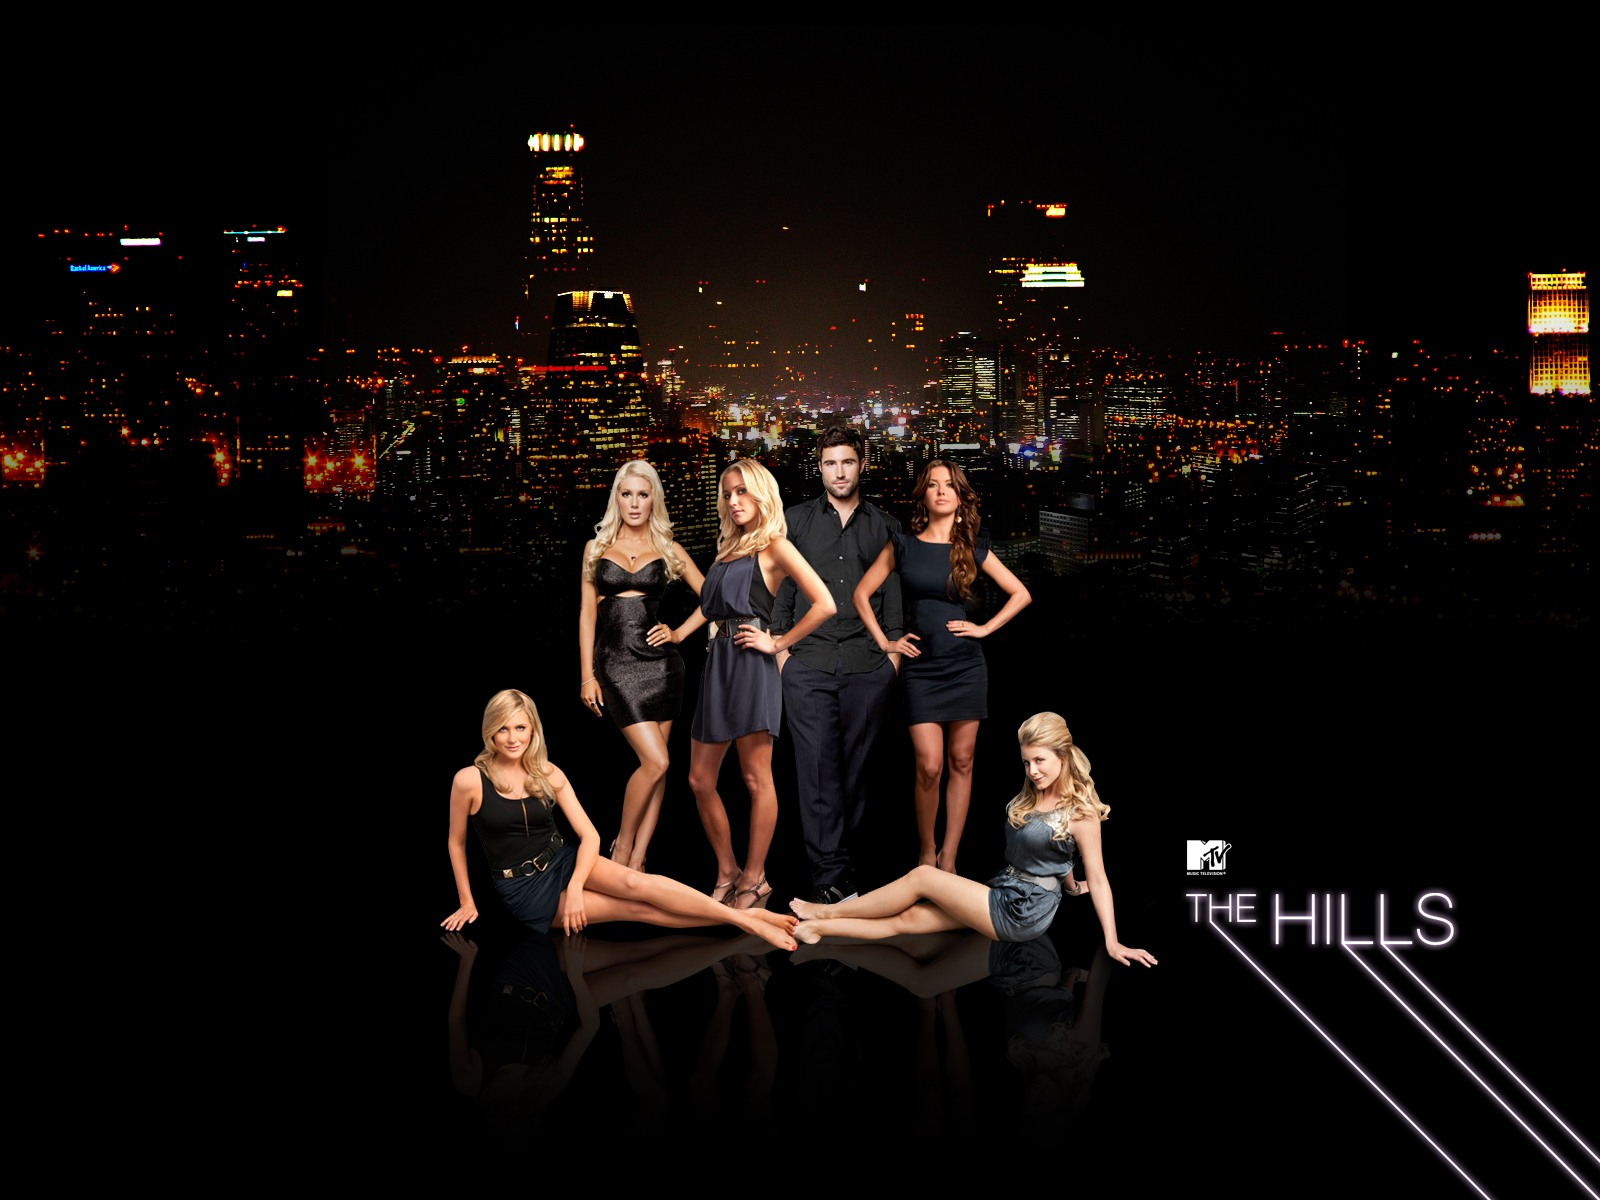 Hollywood Hills Wallpaper The Hills film movie Celebrity and 1600x1200